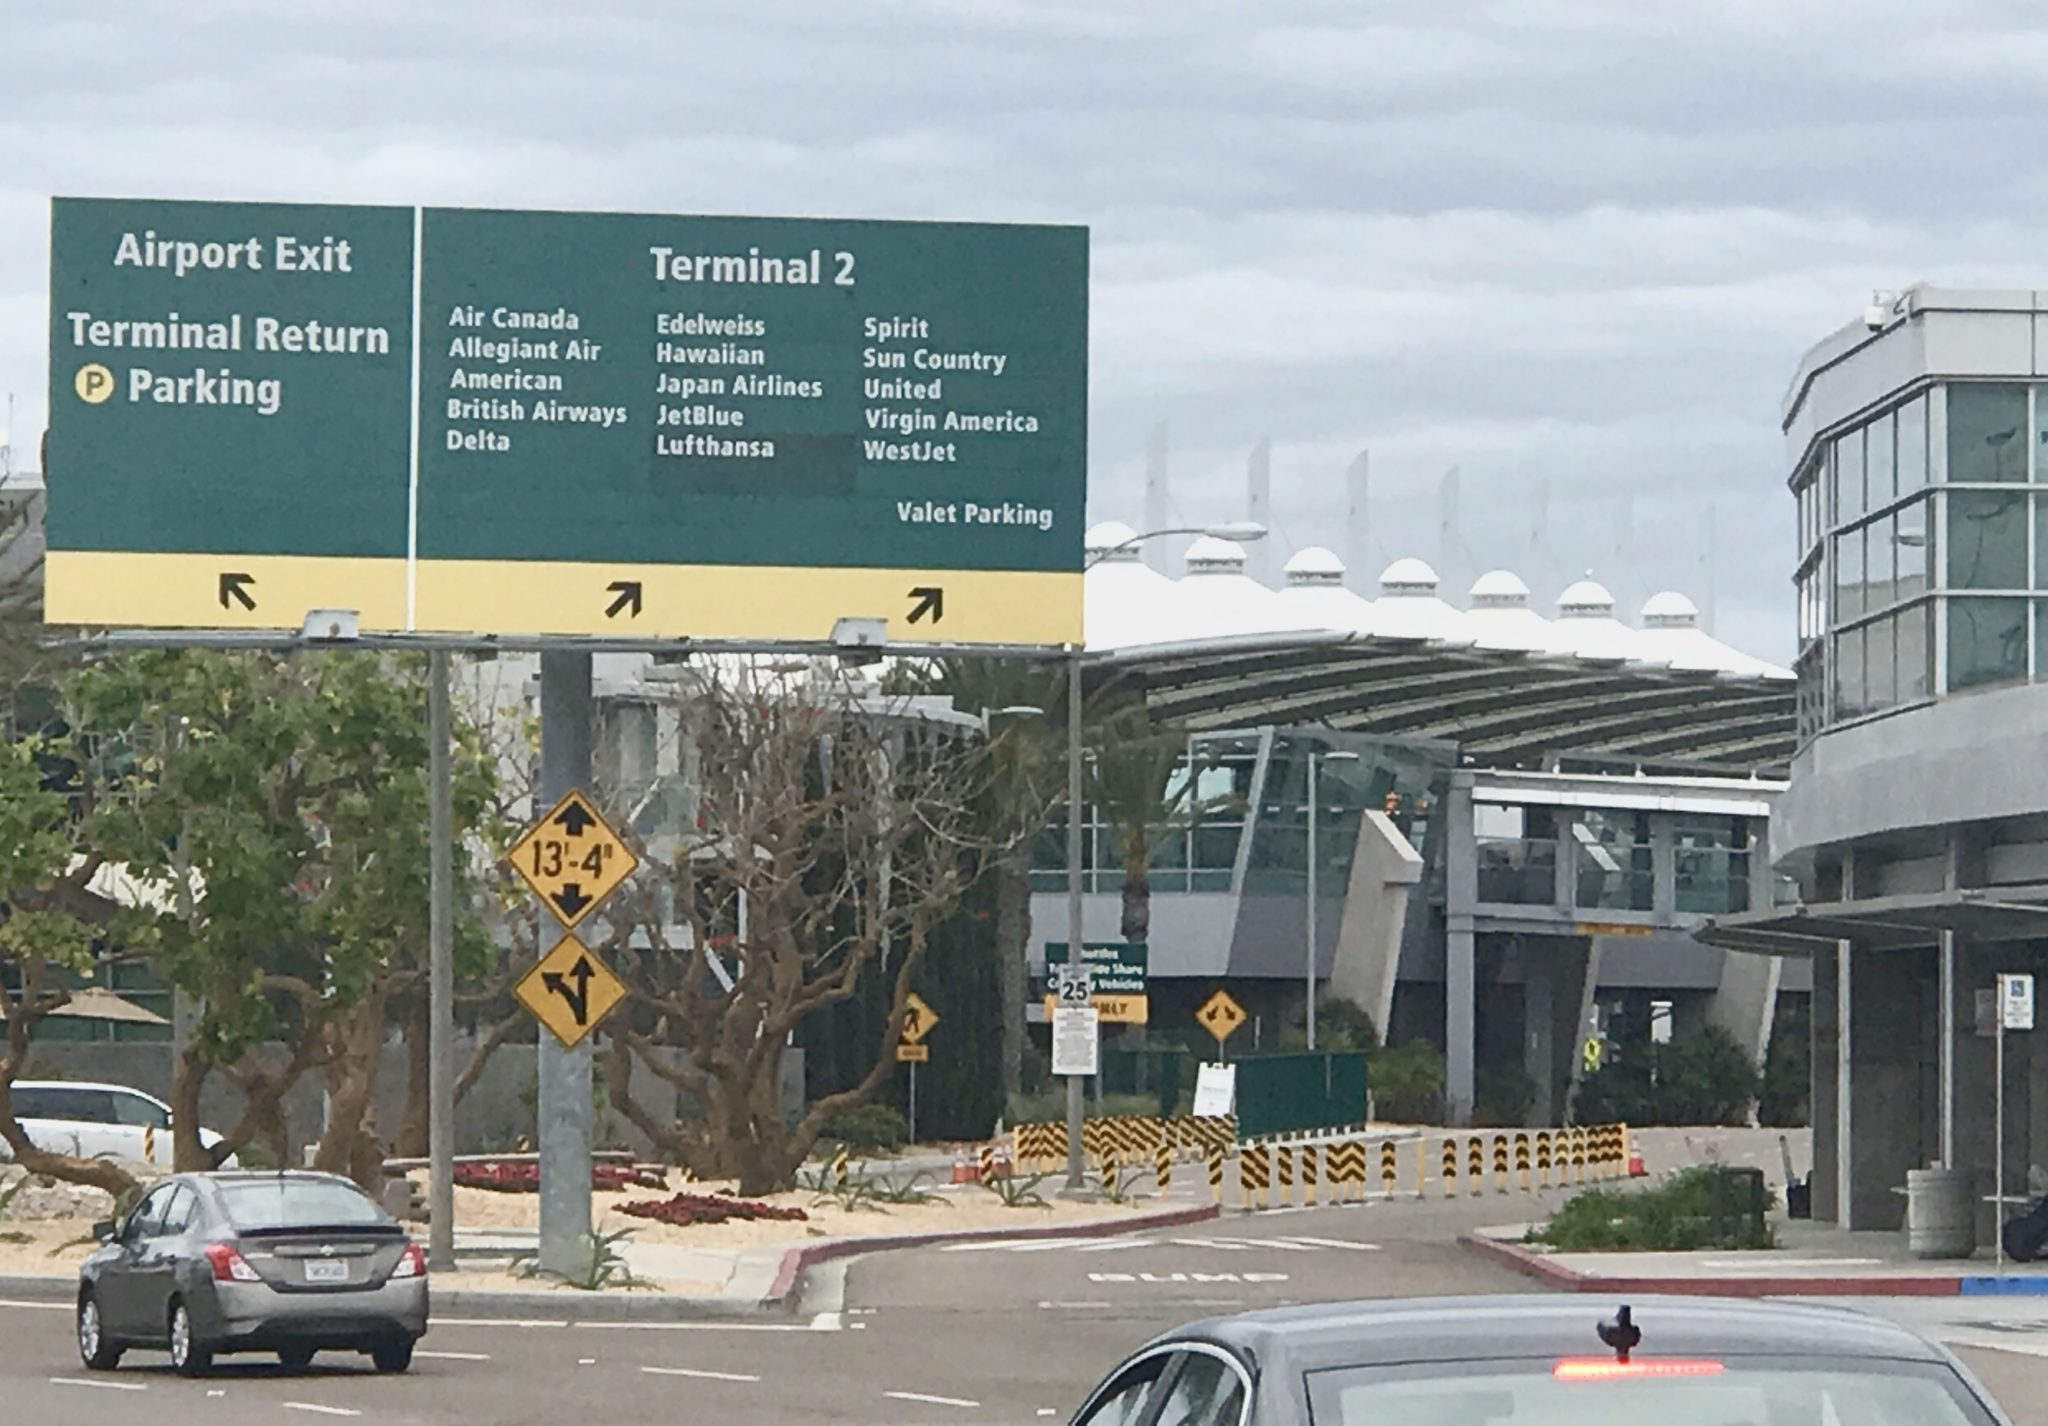 10 Tips for Navigating San Diego International Airport